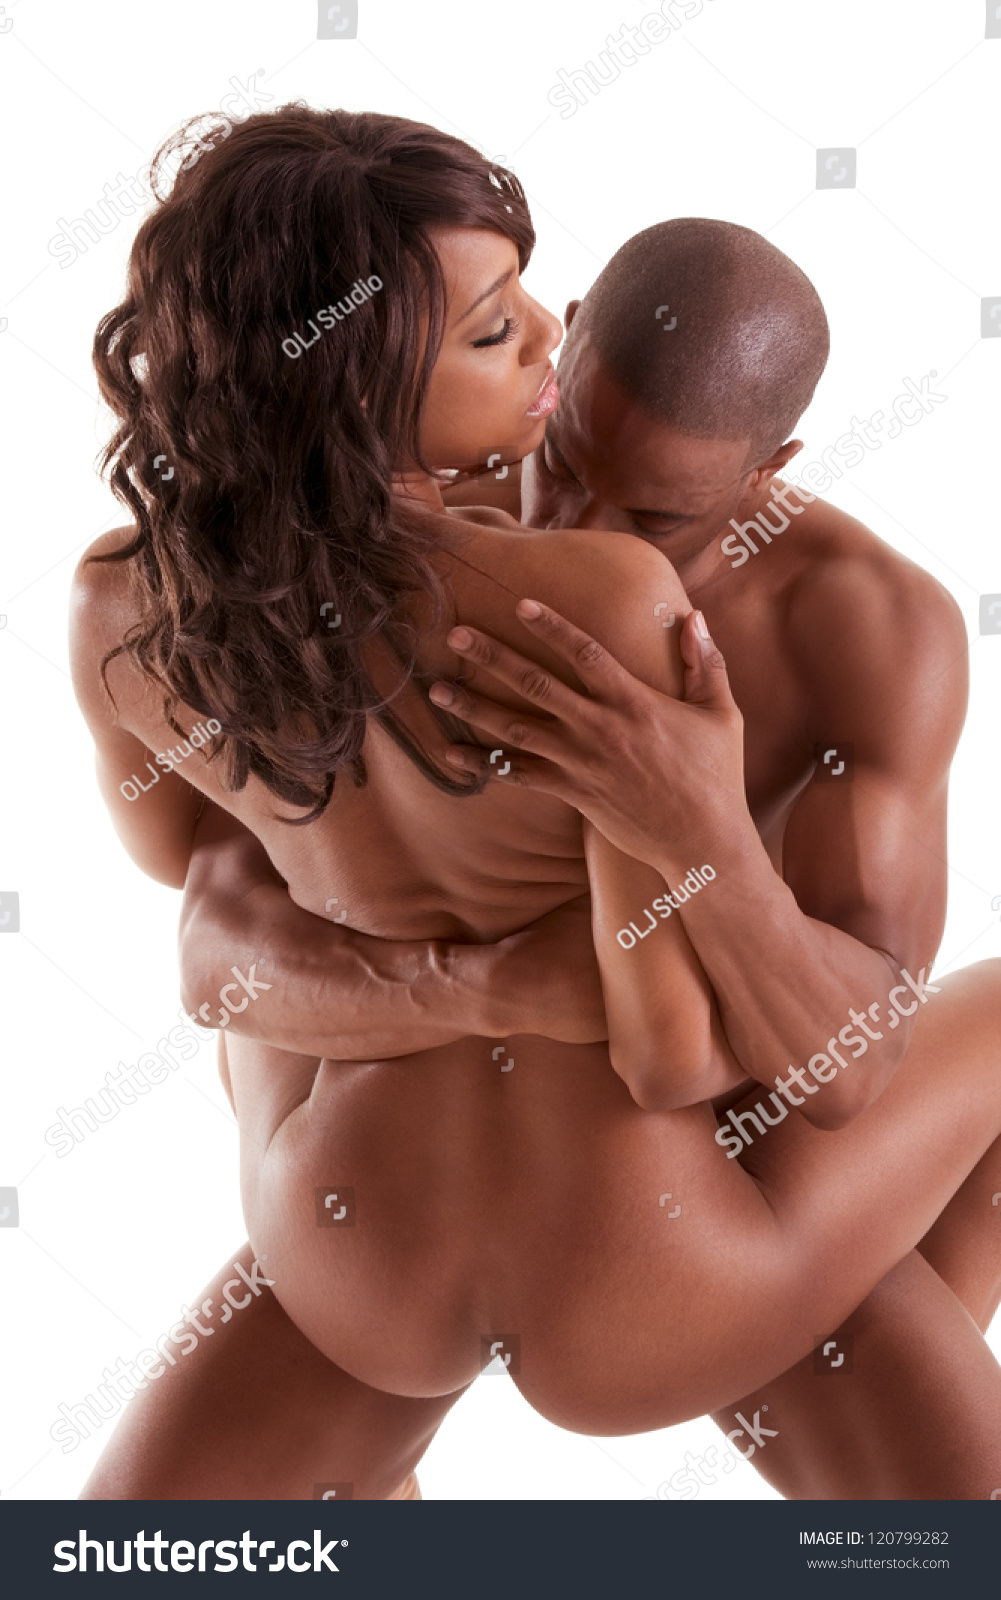 Mblack couples making love Lovers Africanamerican Black Sensual Couple Making Stock Photo Edit Now 120799282